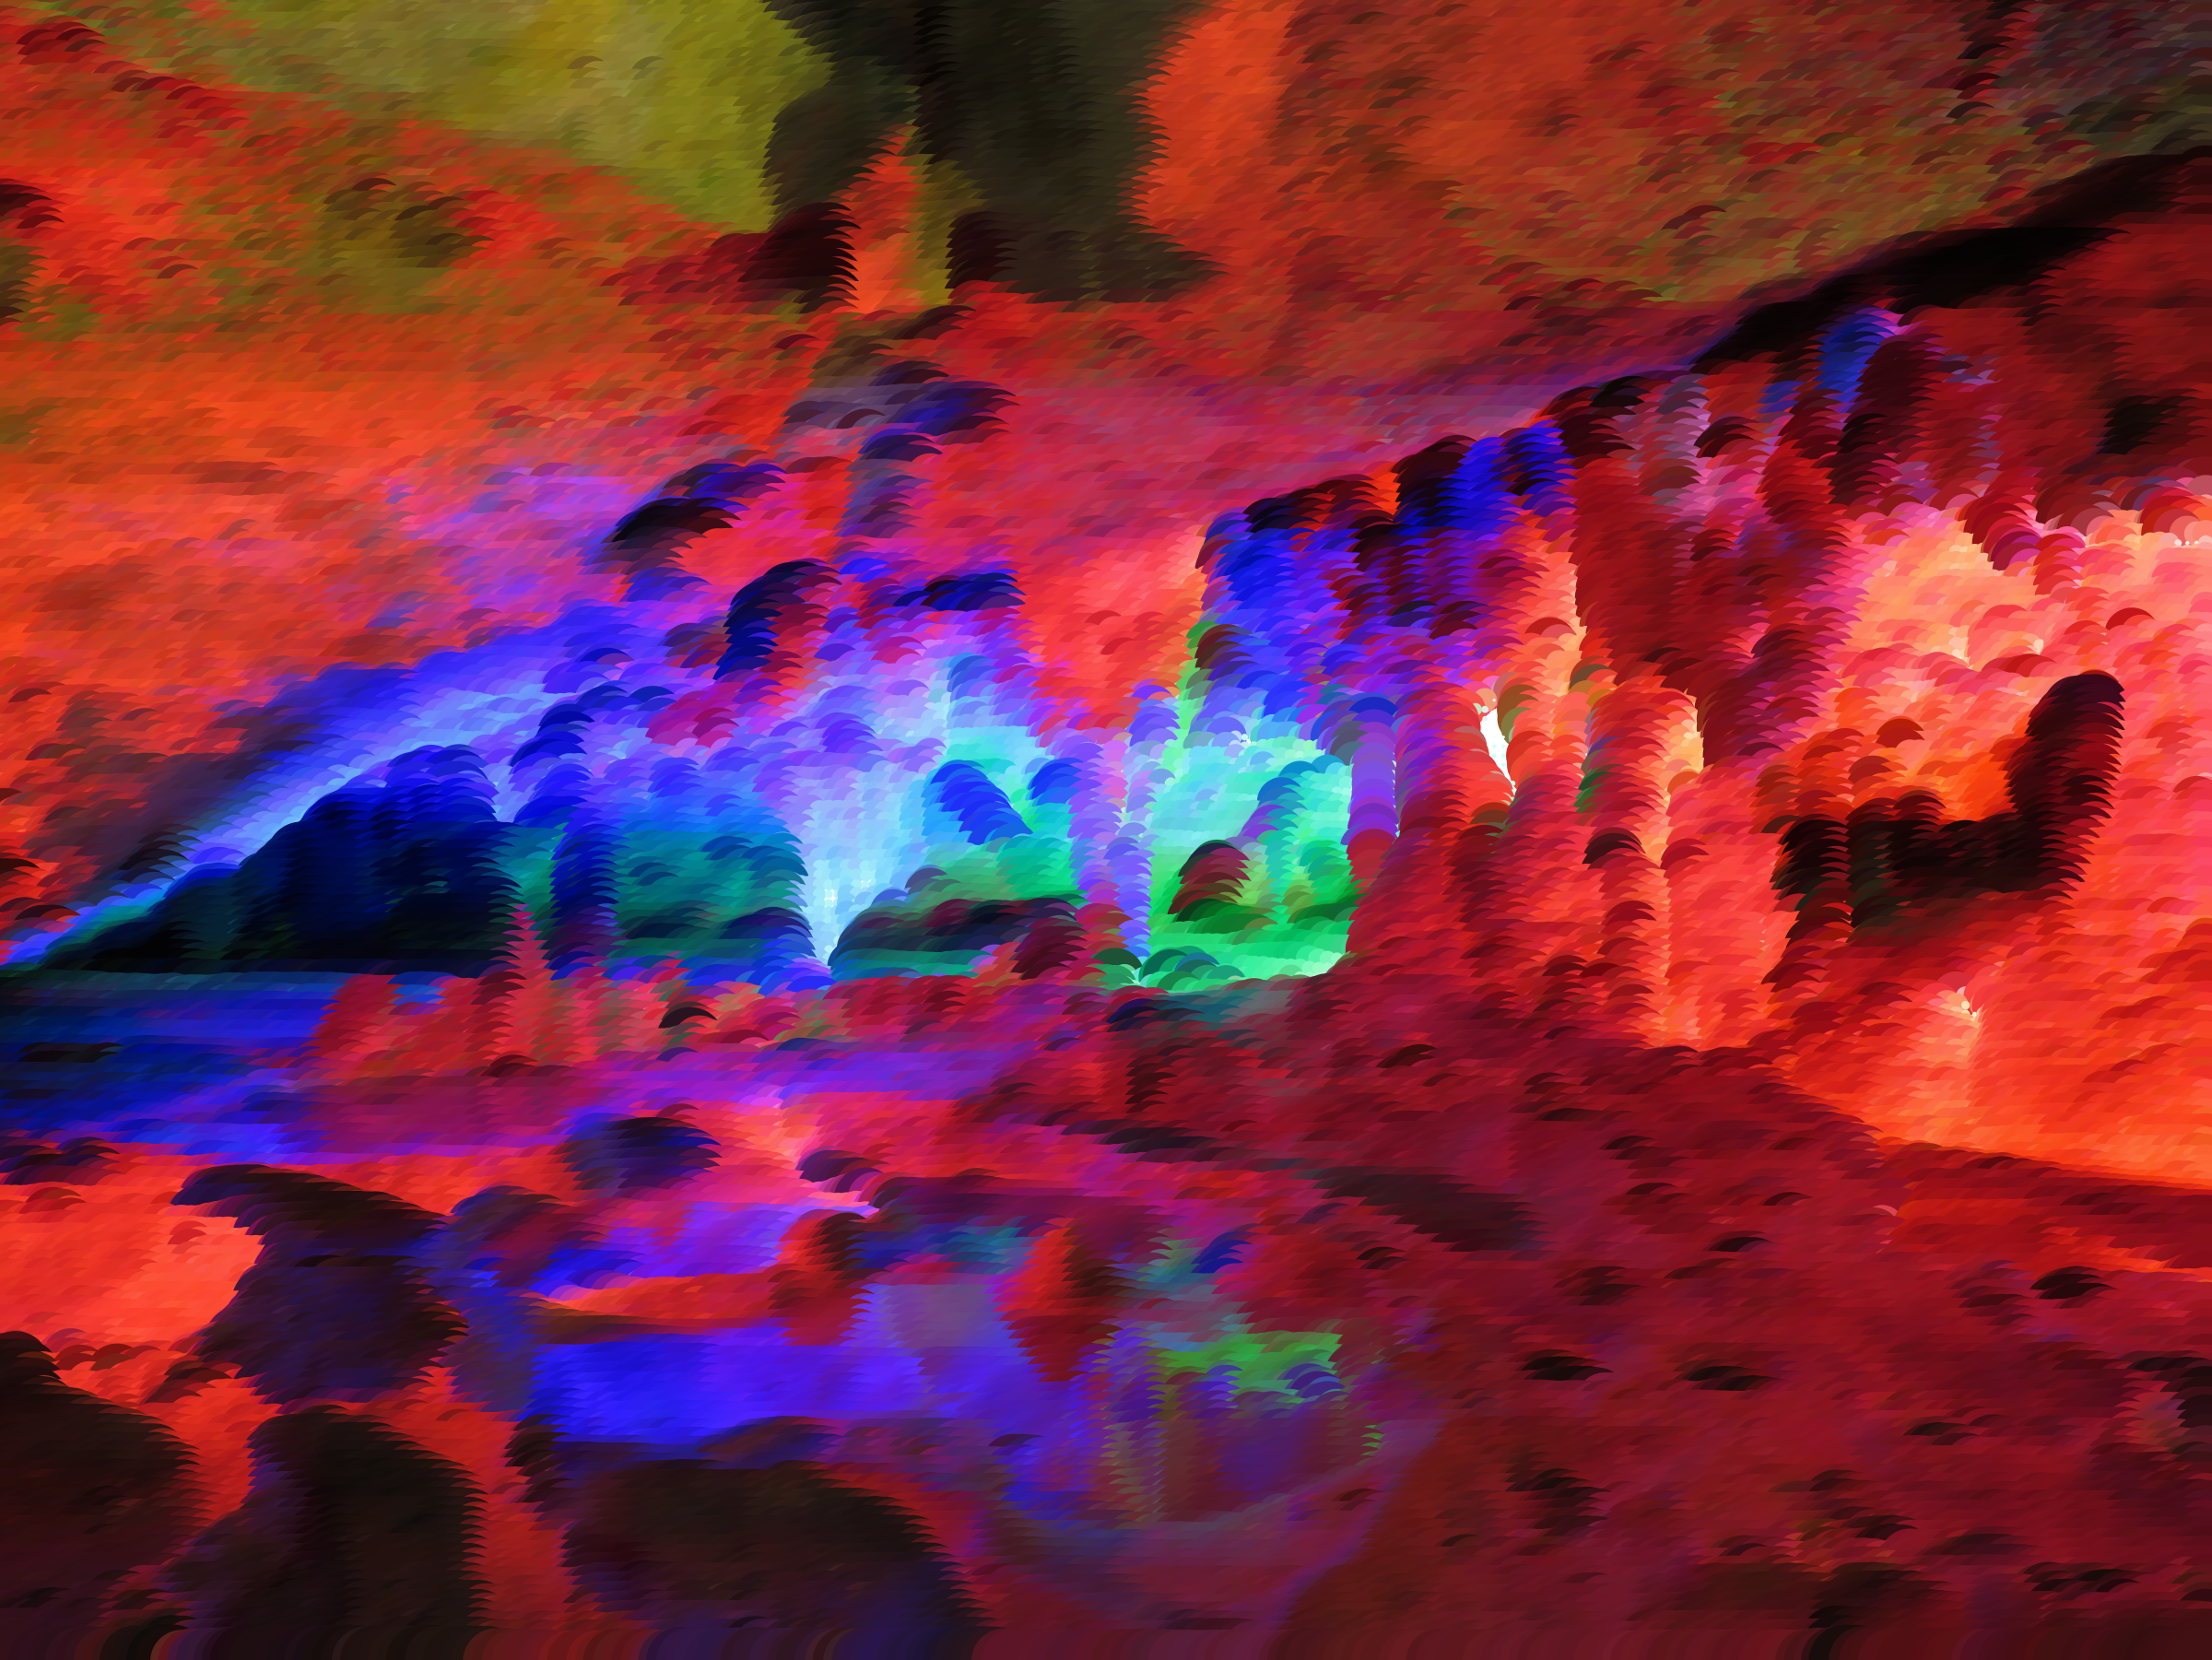 Surreal Prismatic Cavern by GDJ